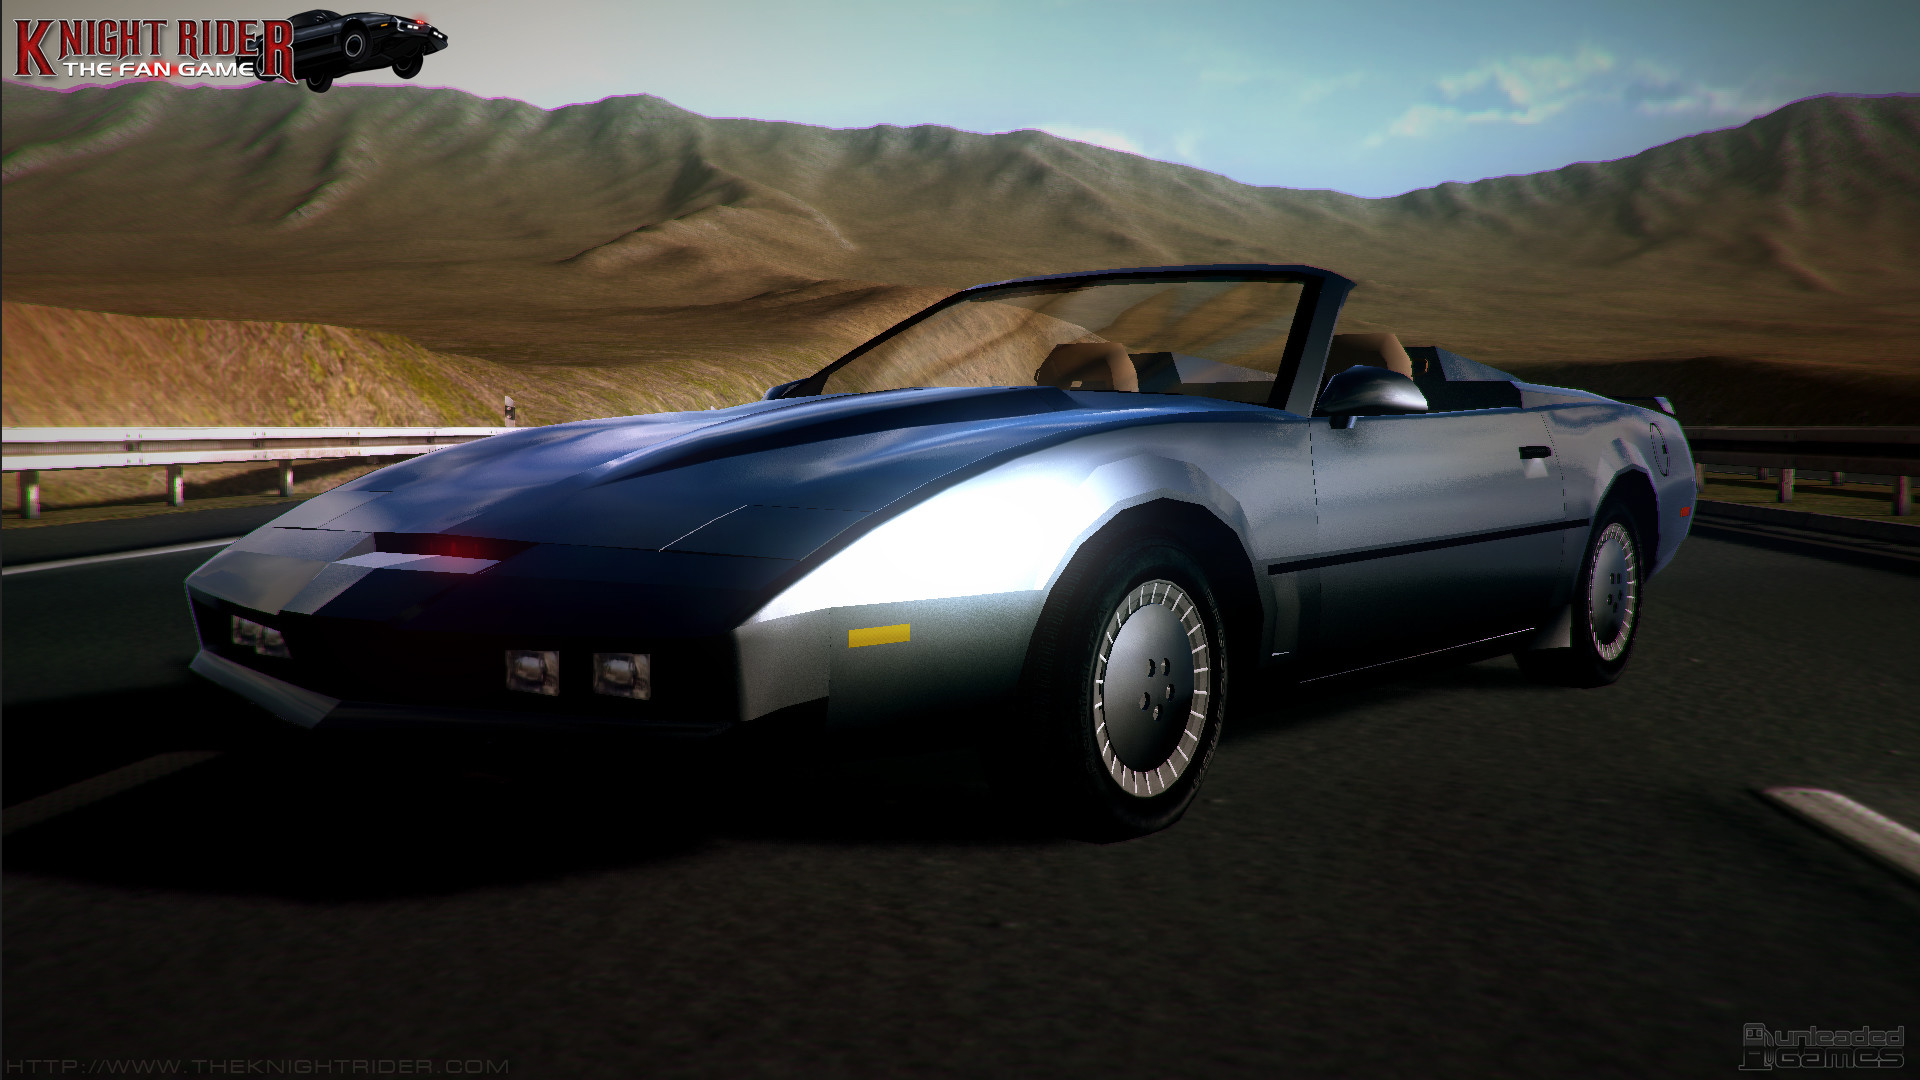 Related Pictures Knight Rider Wallpapers Knight Rider